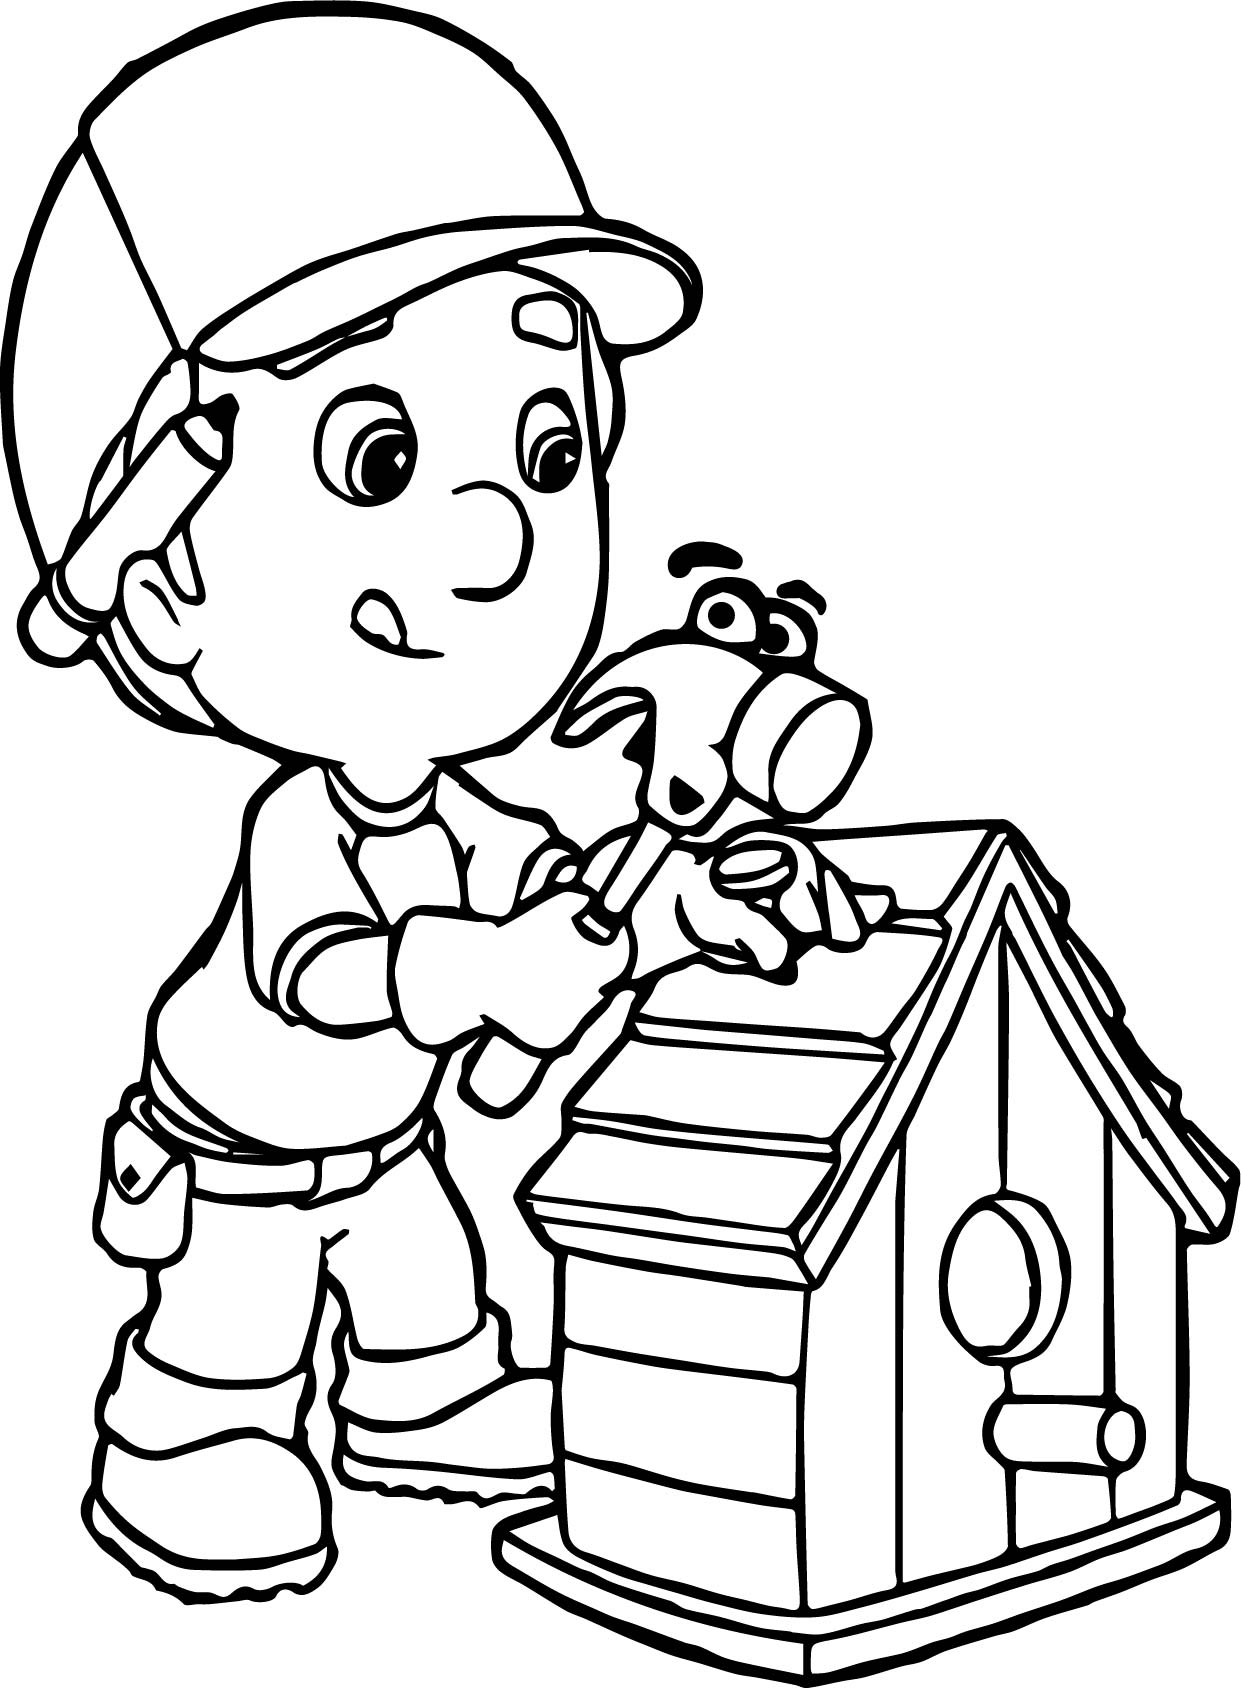 Manny And Pat Fixing A Bird House Coloring Page